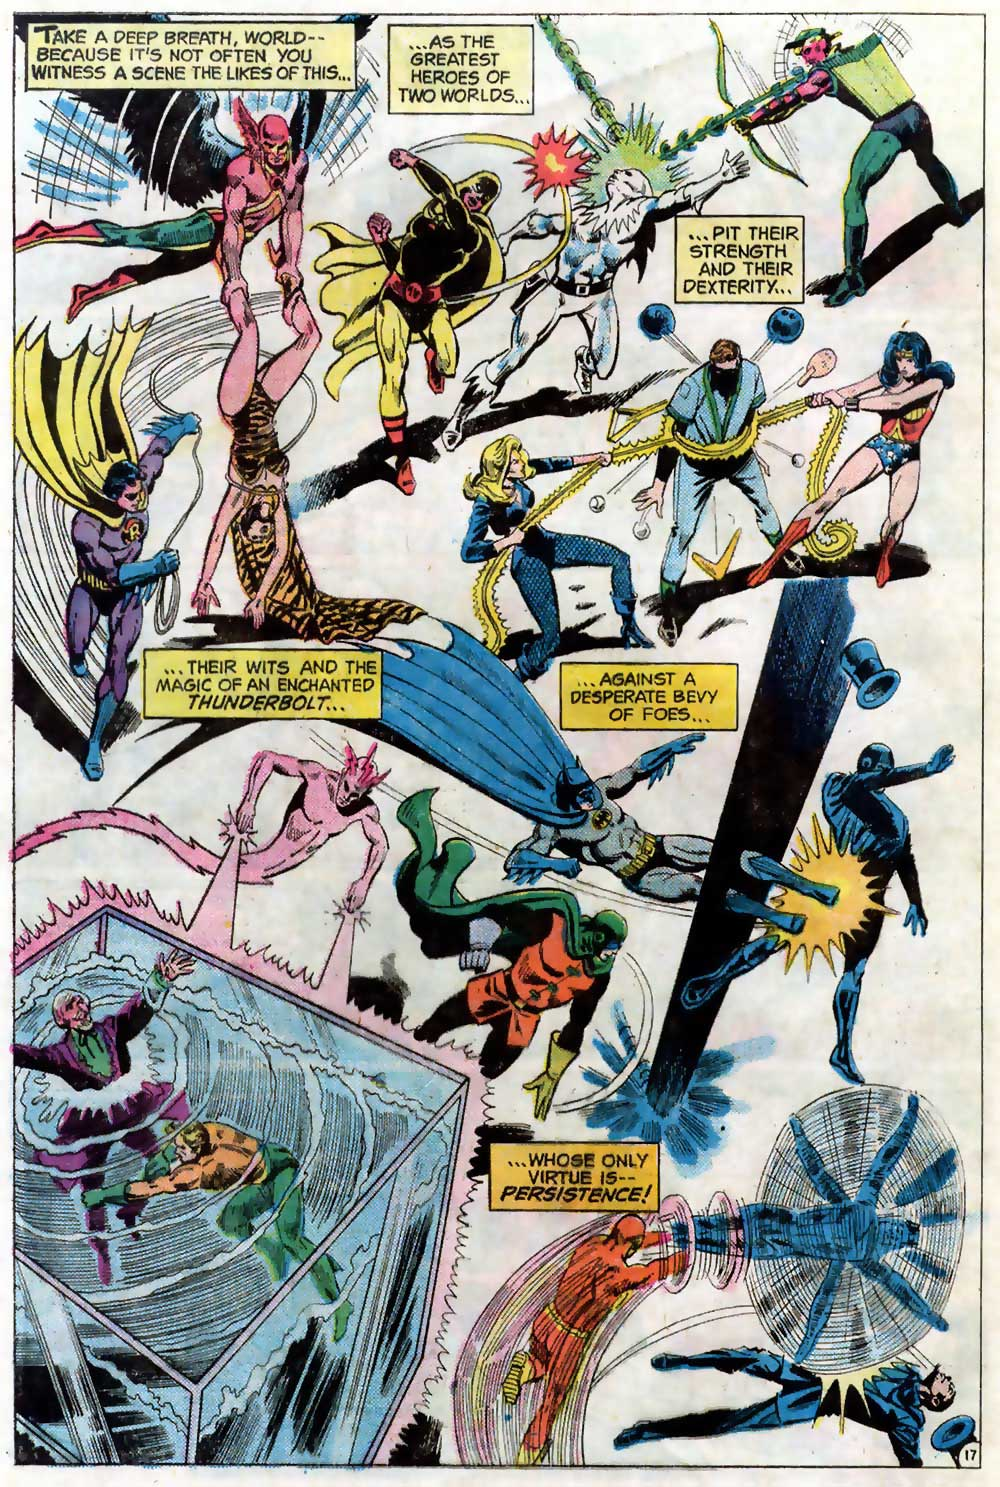 Dick Dillin on Justice League of America #124